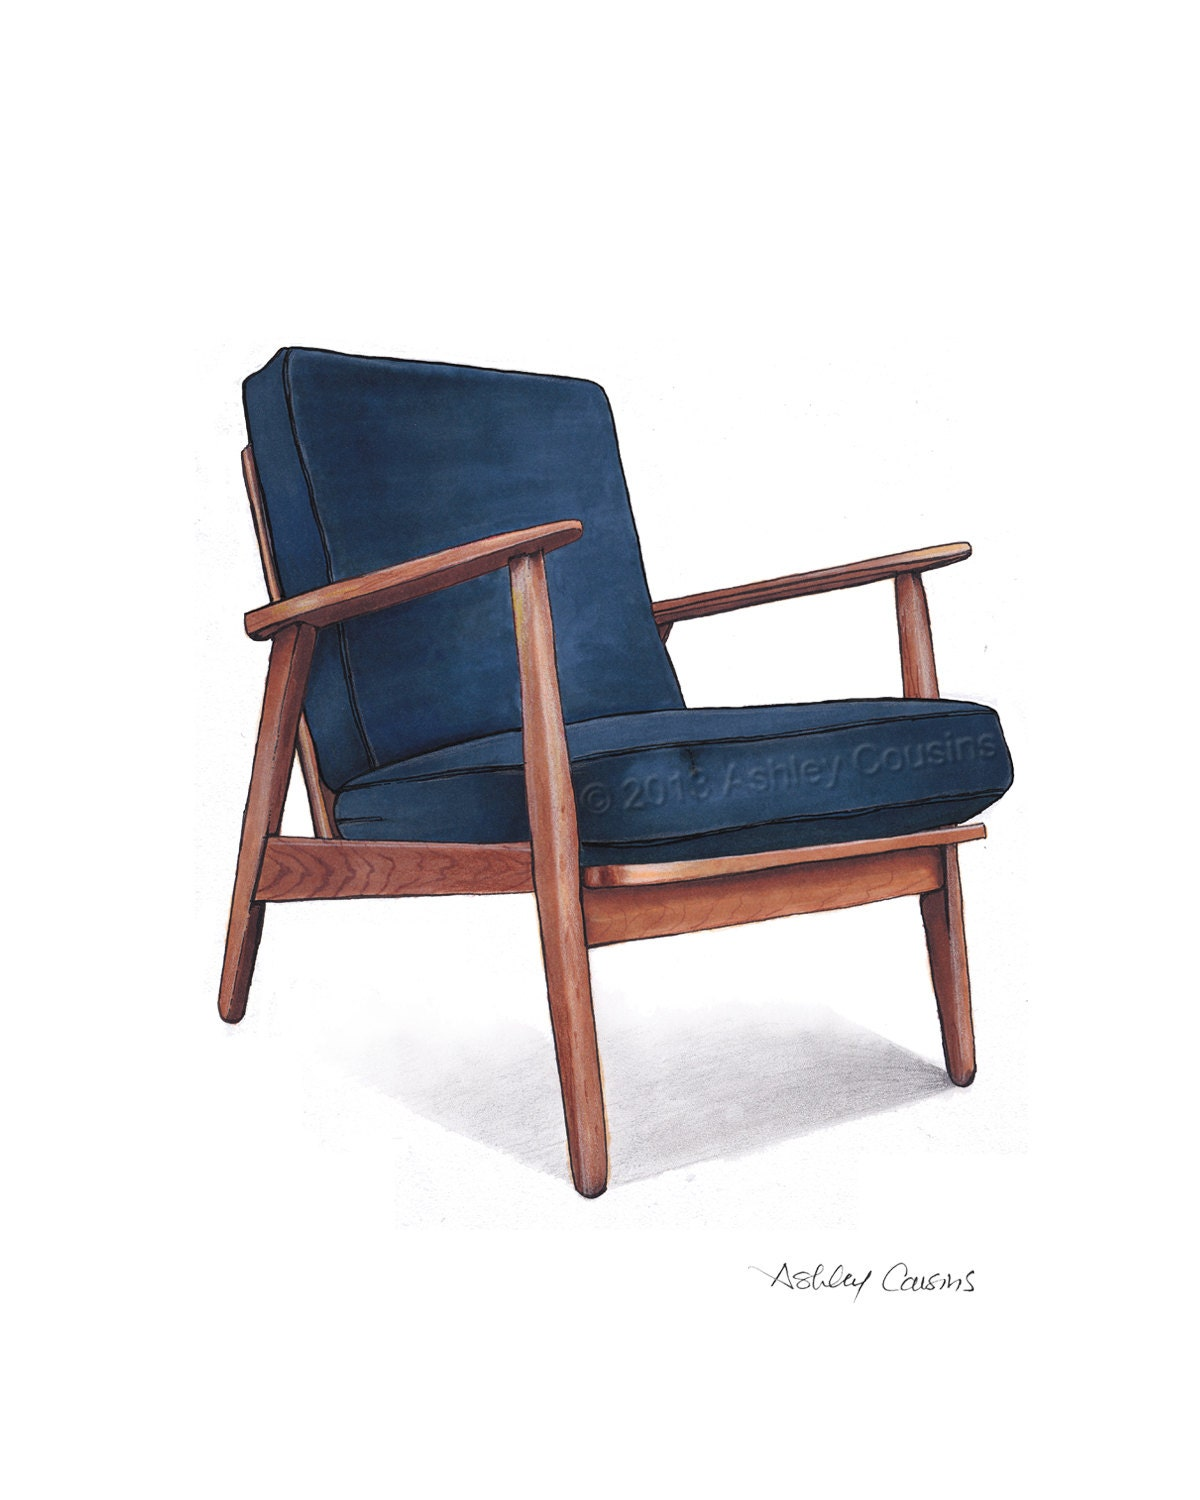 mid century modern danish teak chair drawing navy blue 8x10. Black Bedroom Furniture Sets. Home Design Ideas